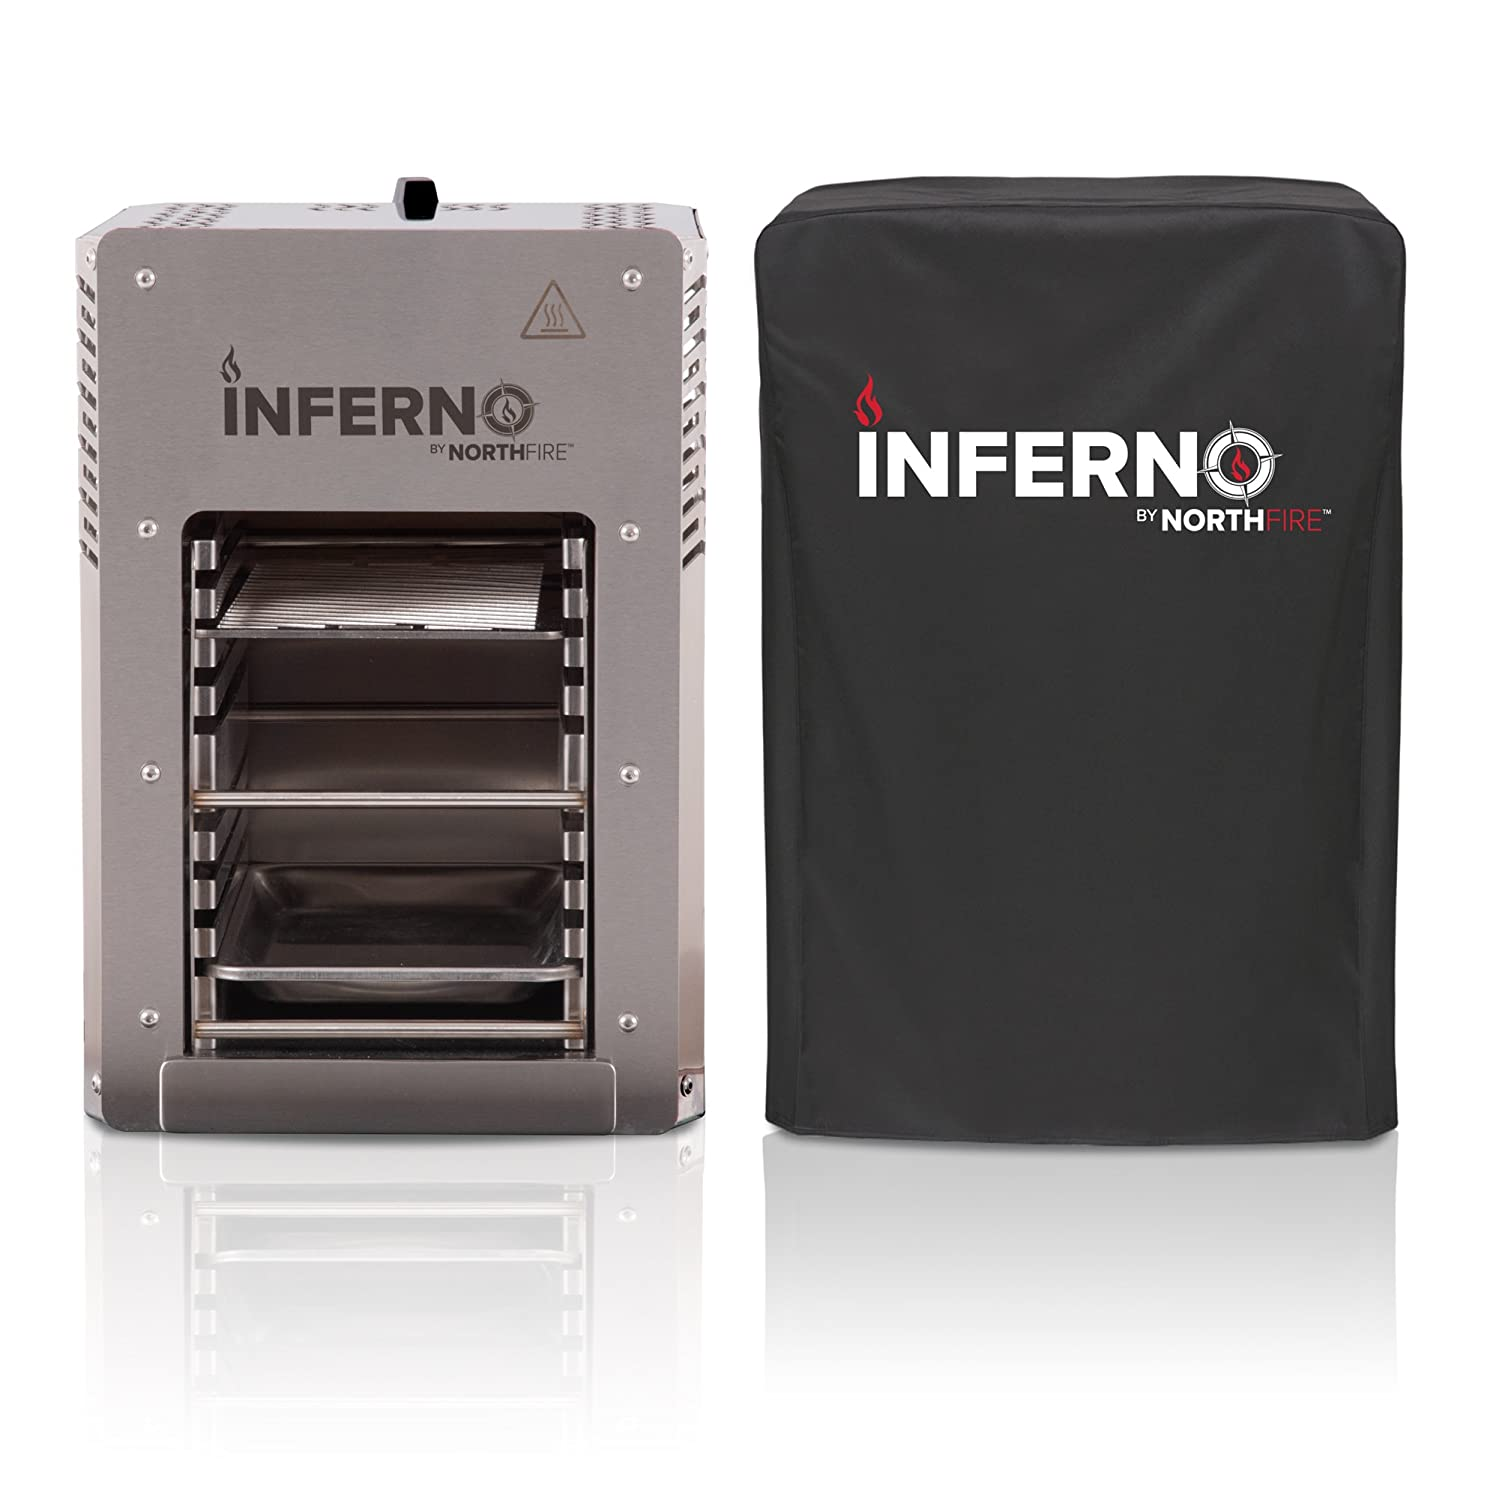 NORTHFIRE INFERCVR Inferno Single Propane Infrared Grill Cover, Black